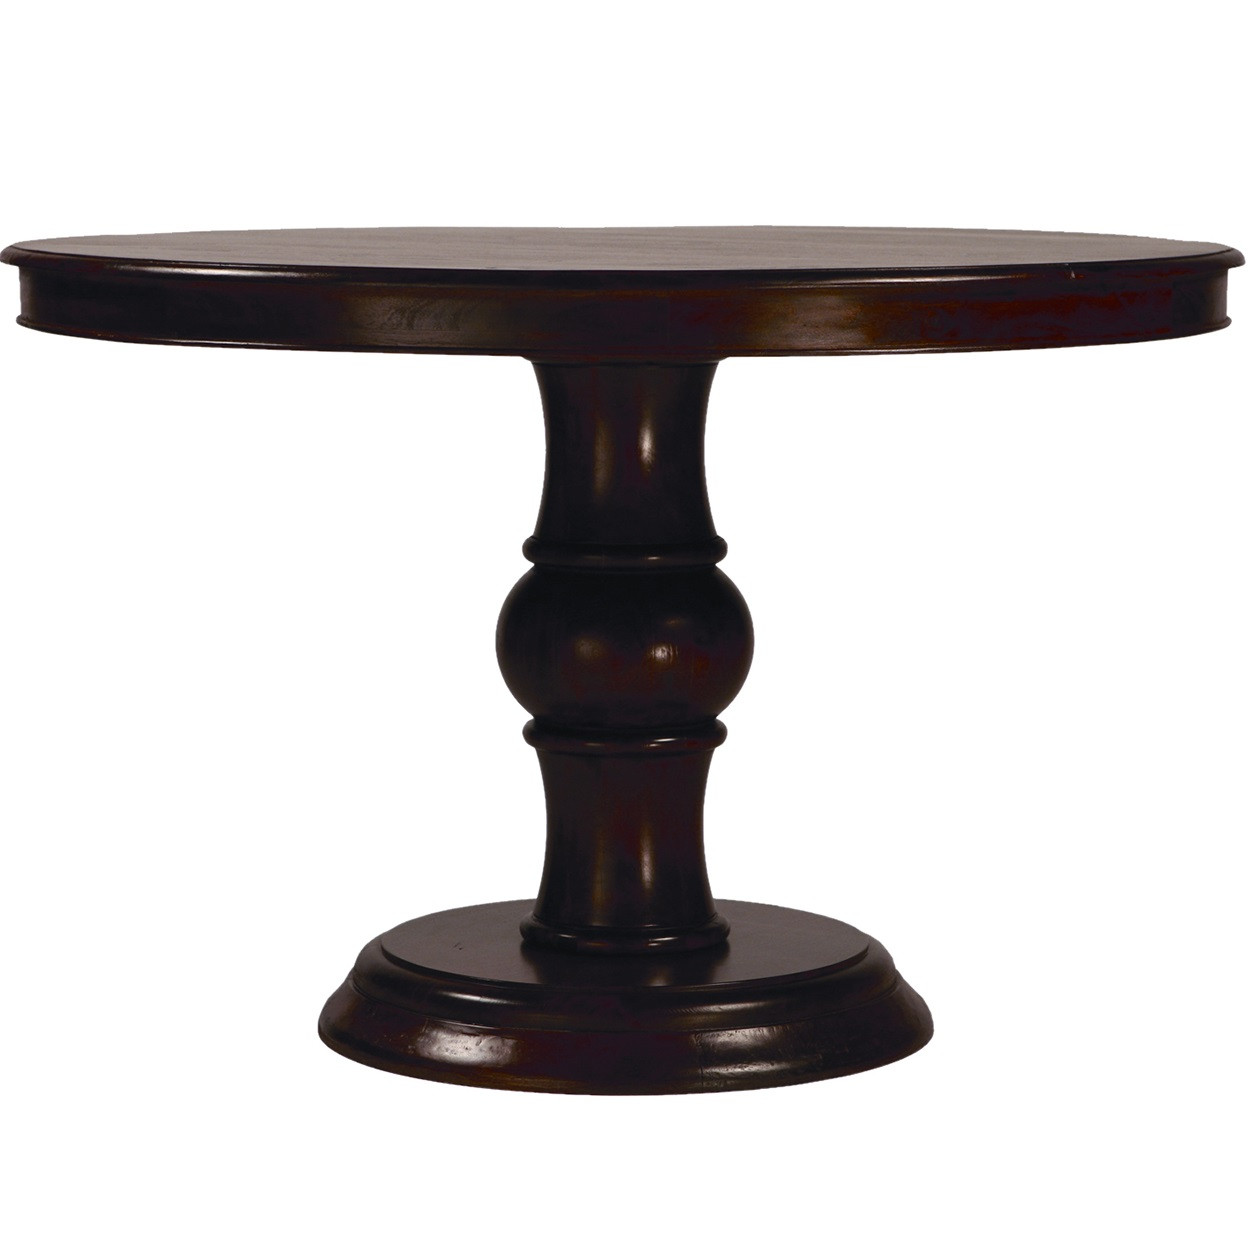 Pedestal Dining Table Lauren Dark Wood Round Pedestal Dining Table 47 Zin Home